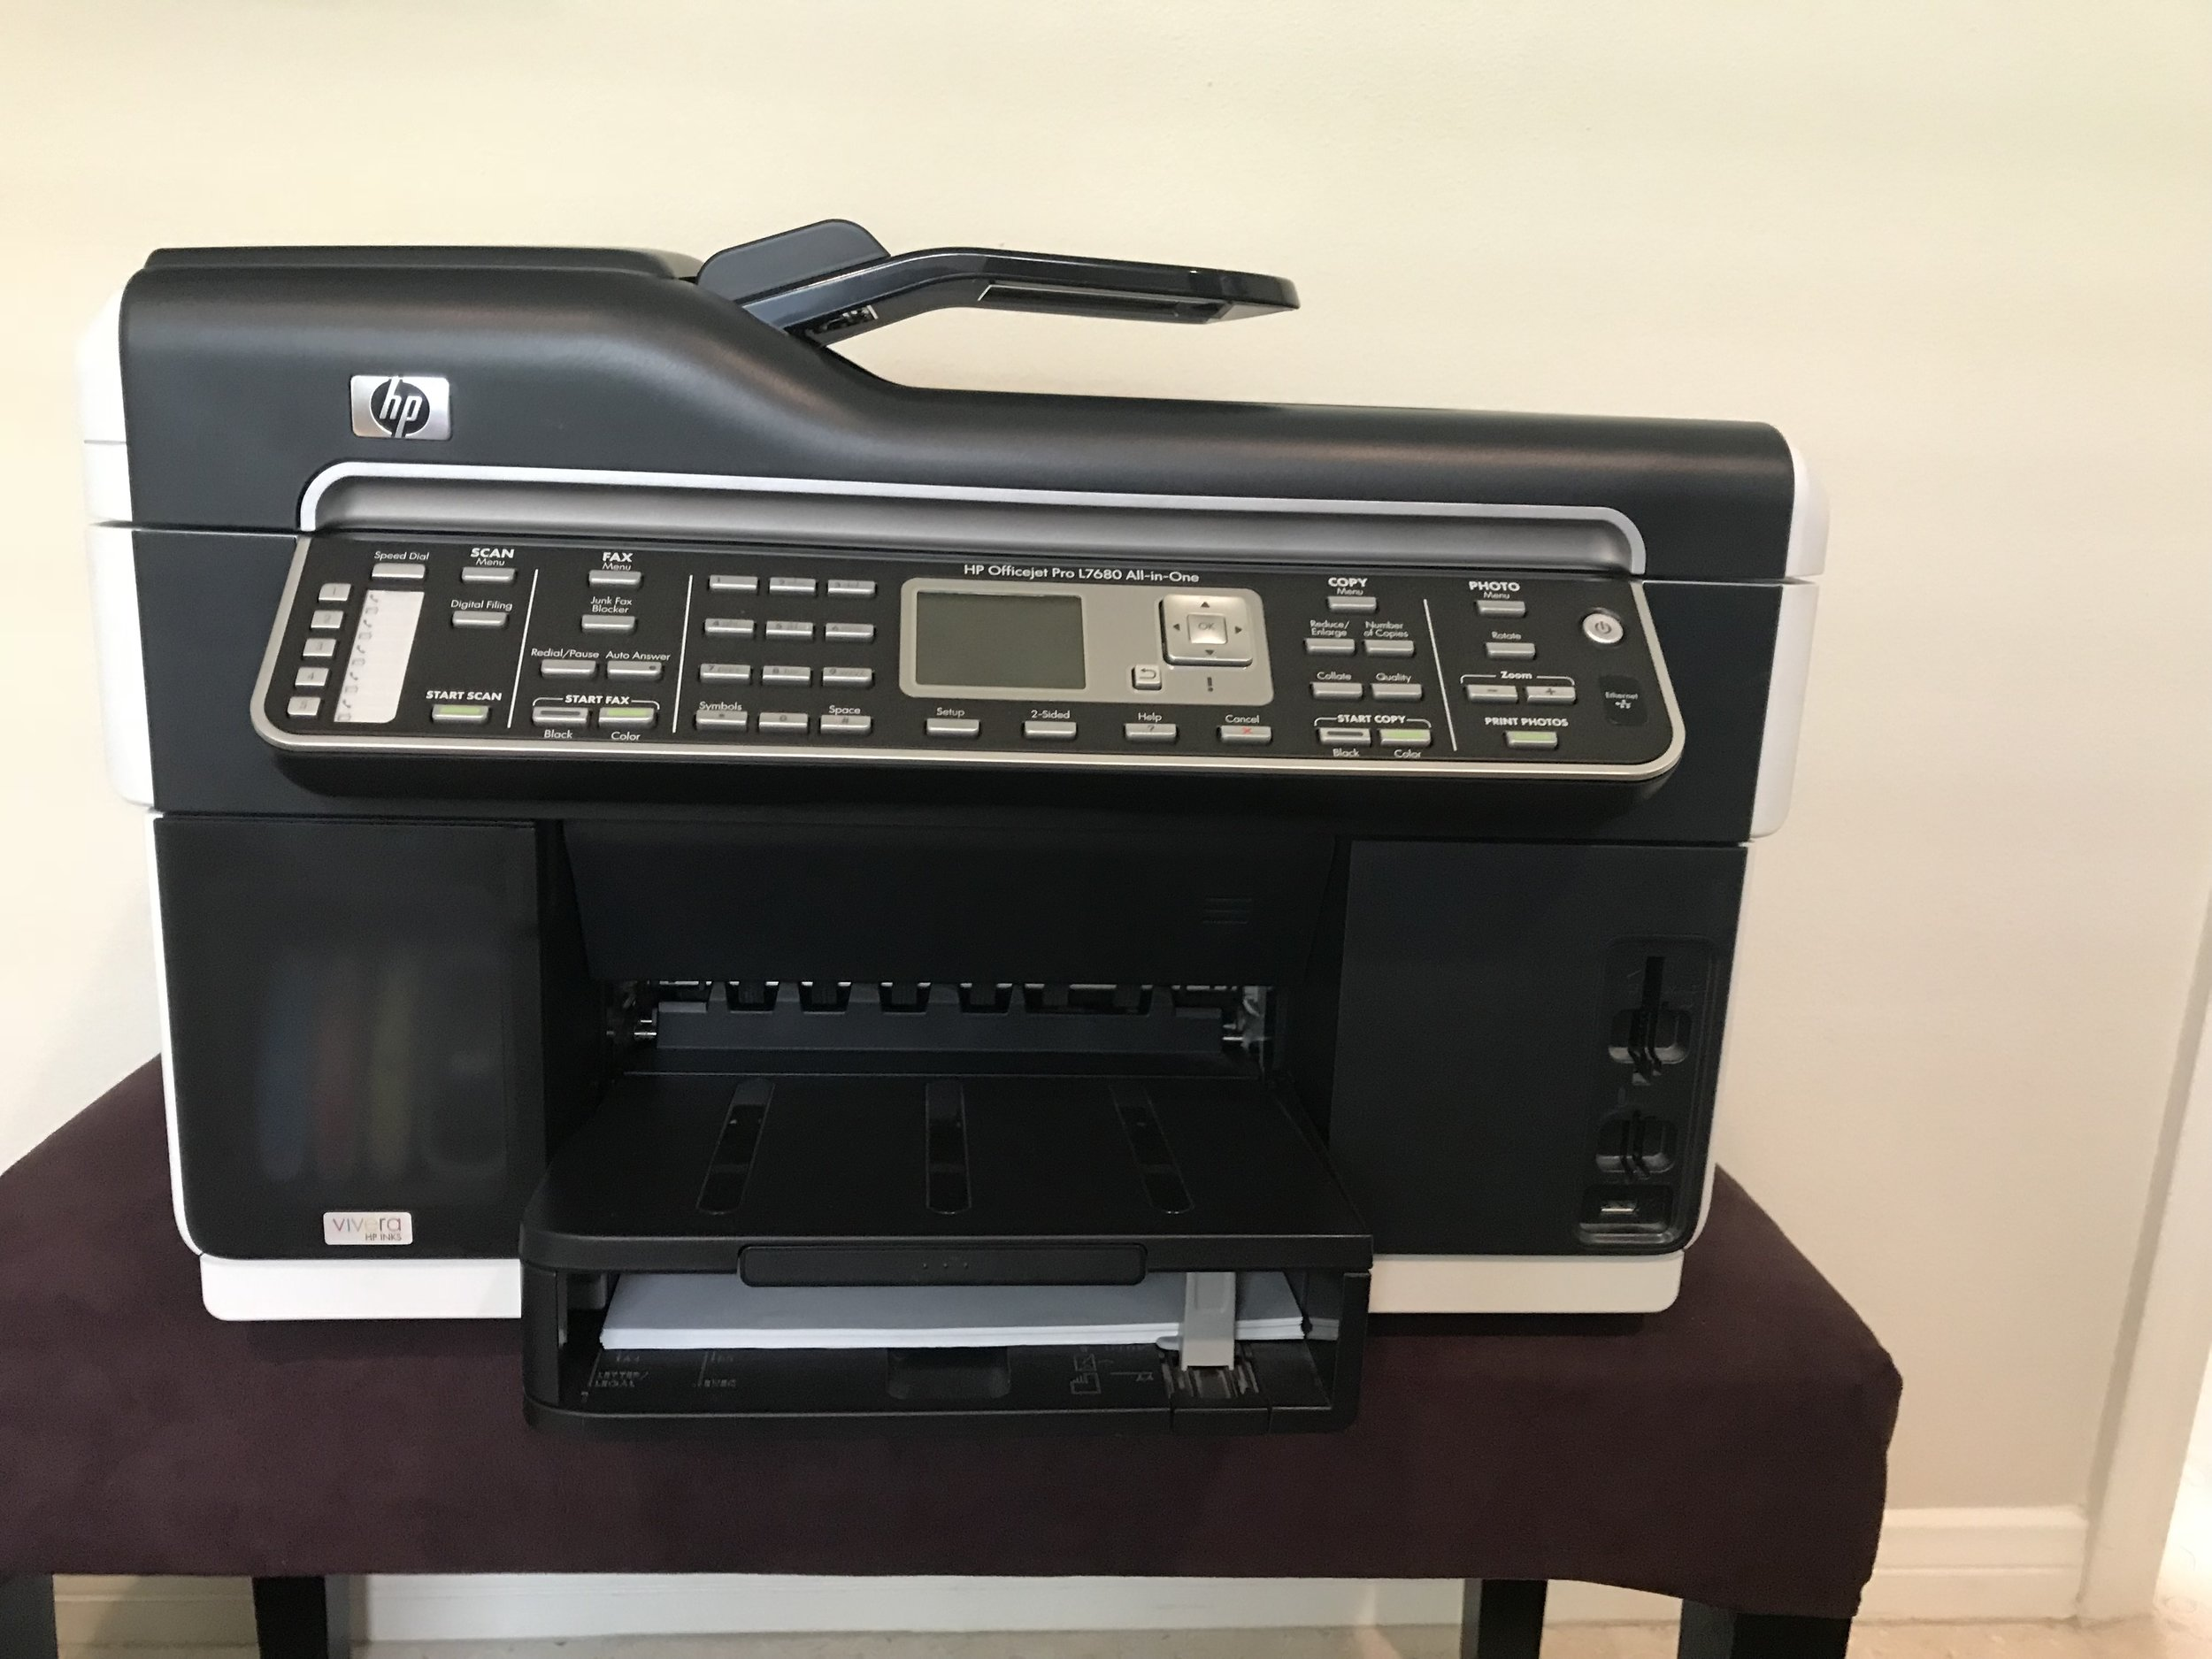 Old printer - Hit puberty and developed and attitude. It was about $300-$400 when I got it and weighs a ton... no longer prints.